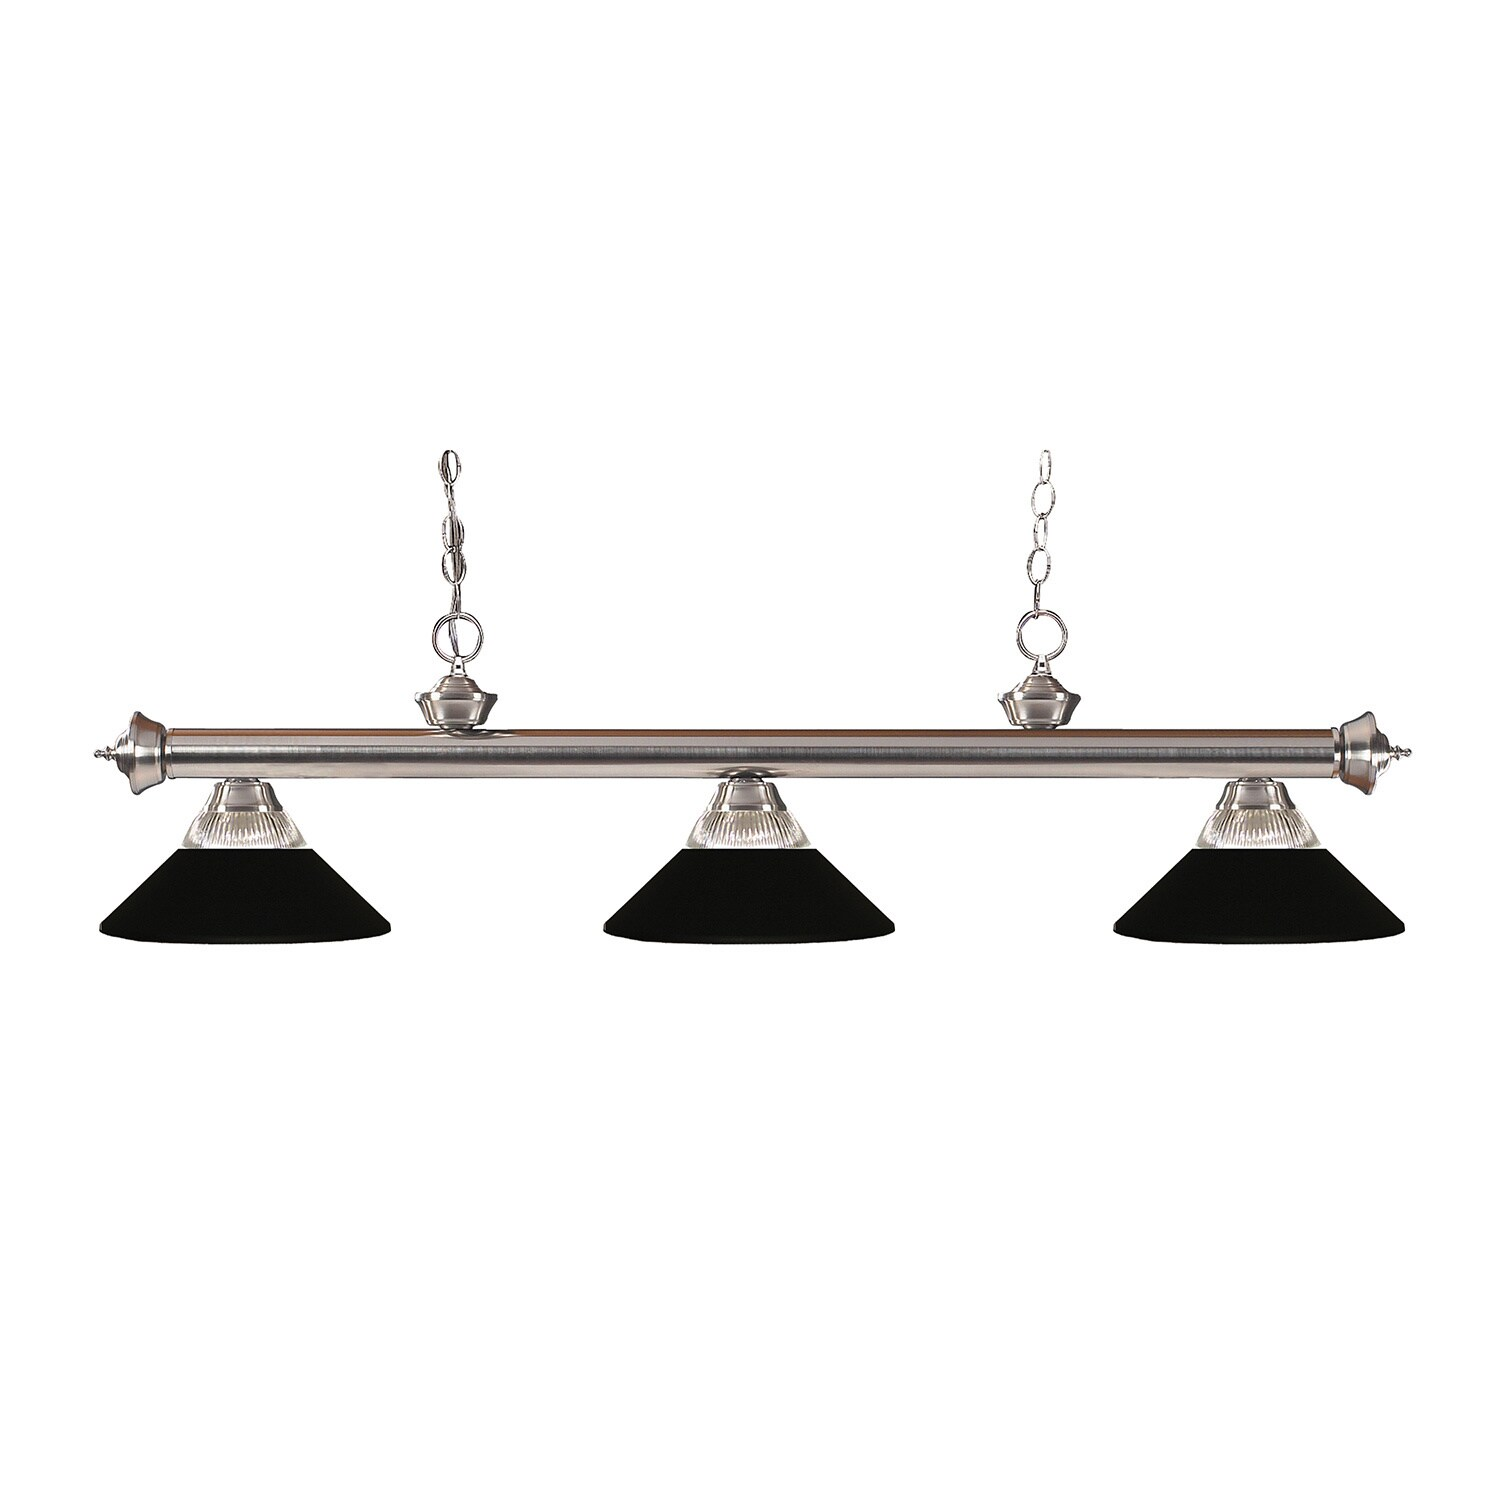 Avery Home Lighting 3 Light Riviera Brushed Nickel Clear